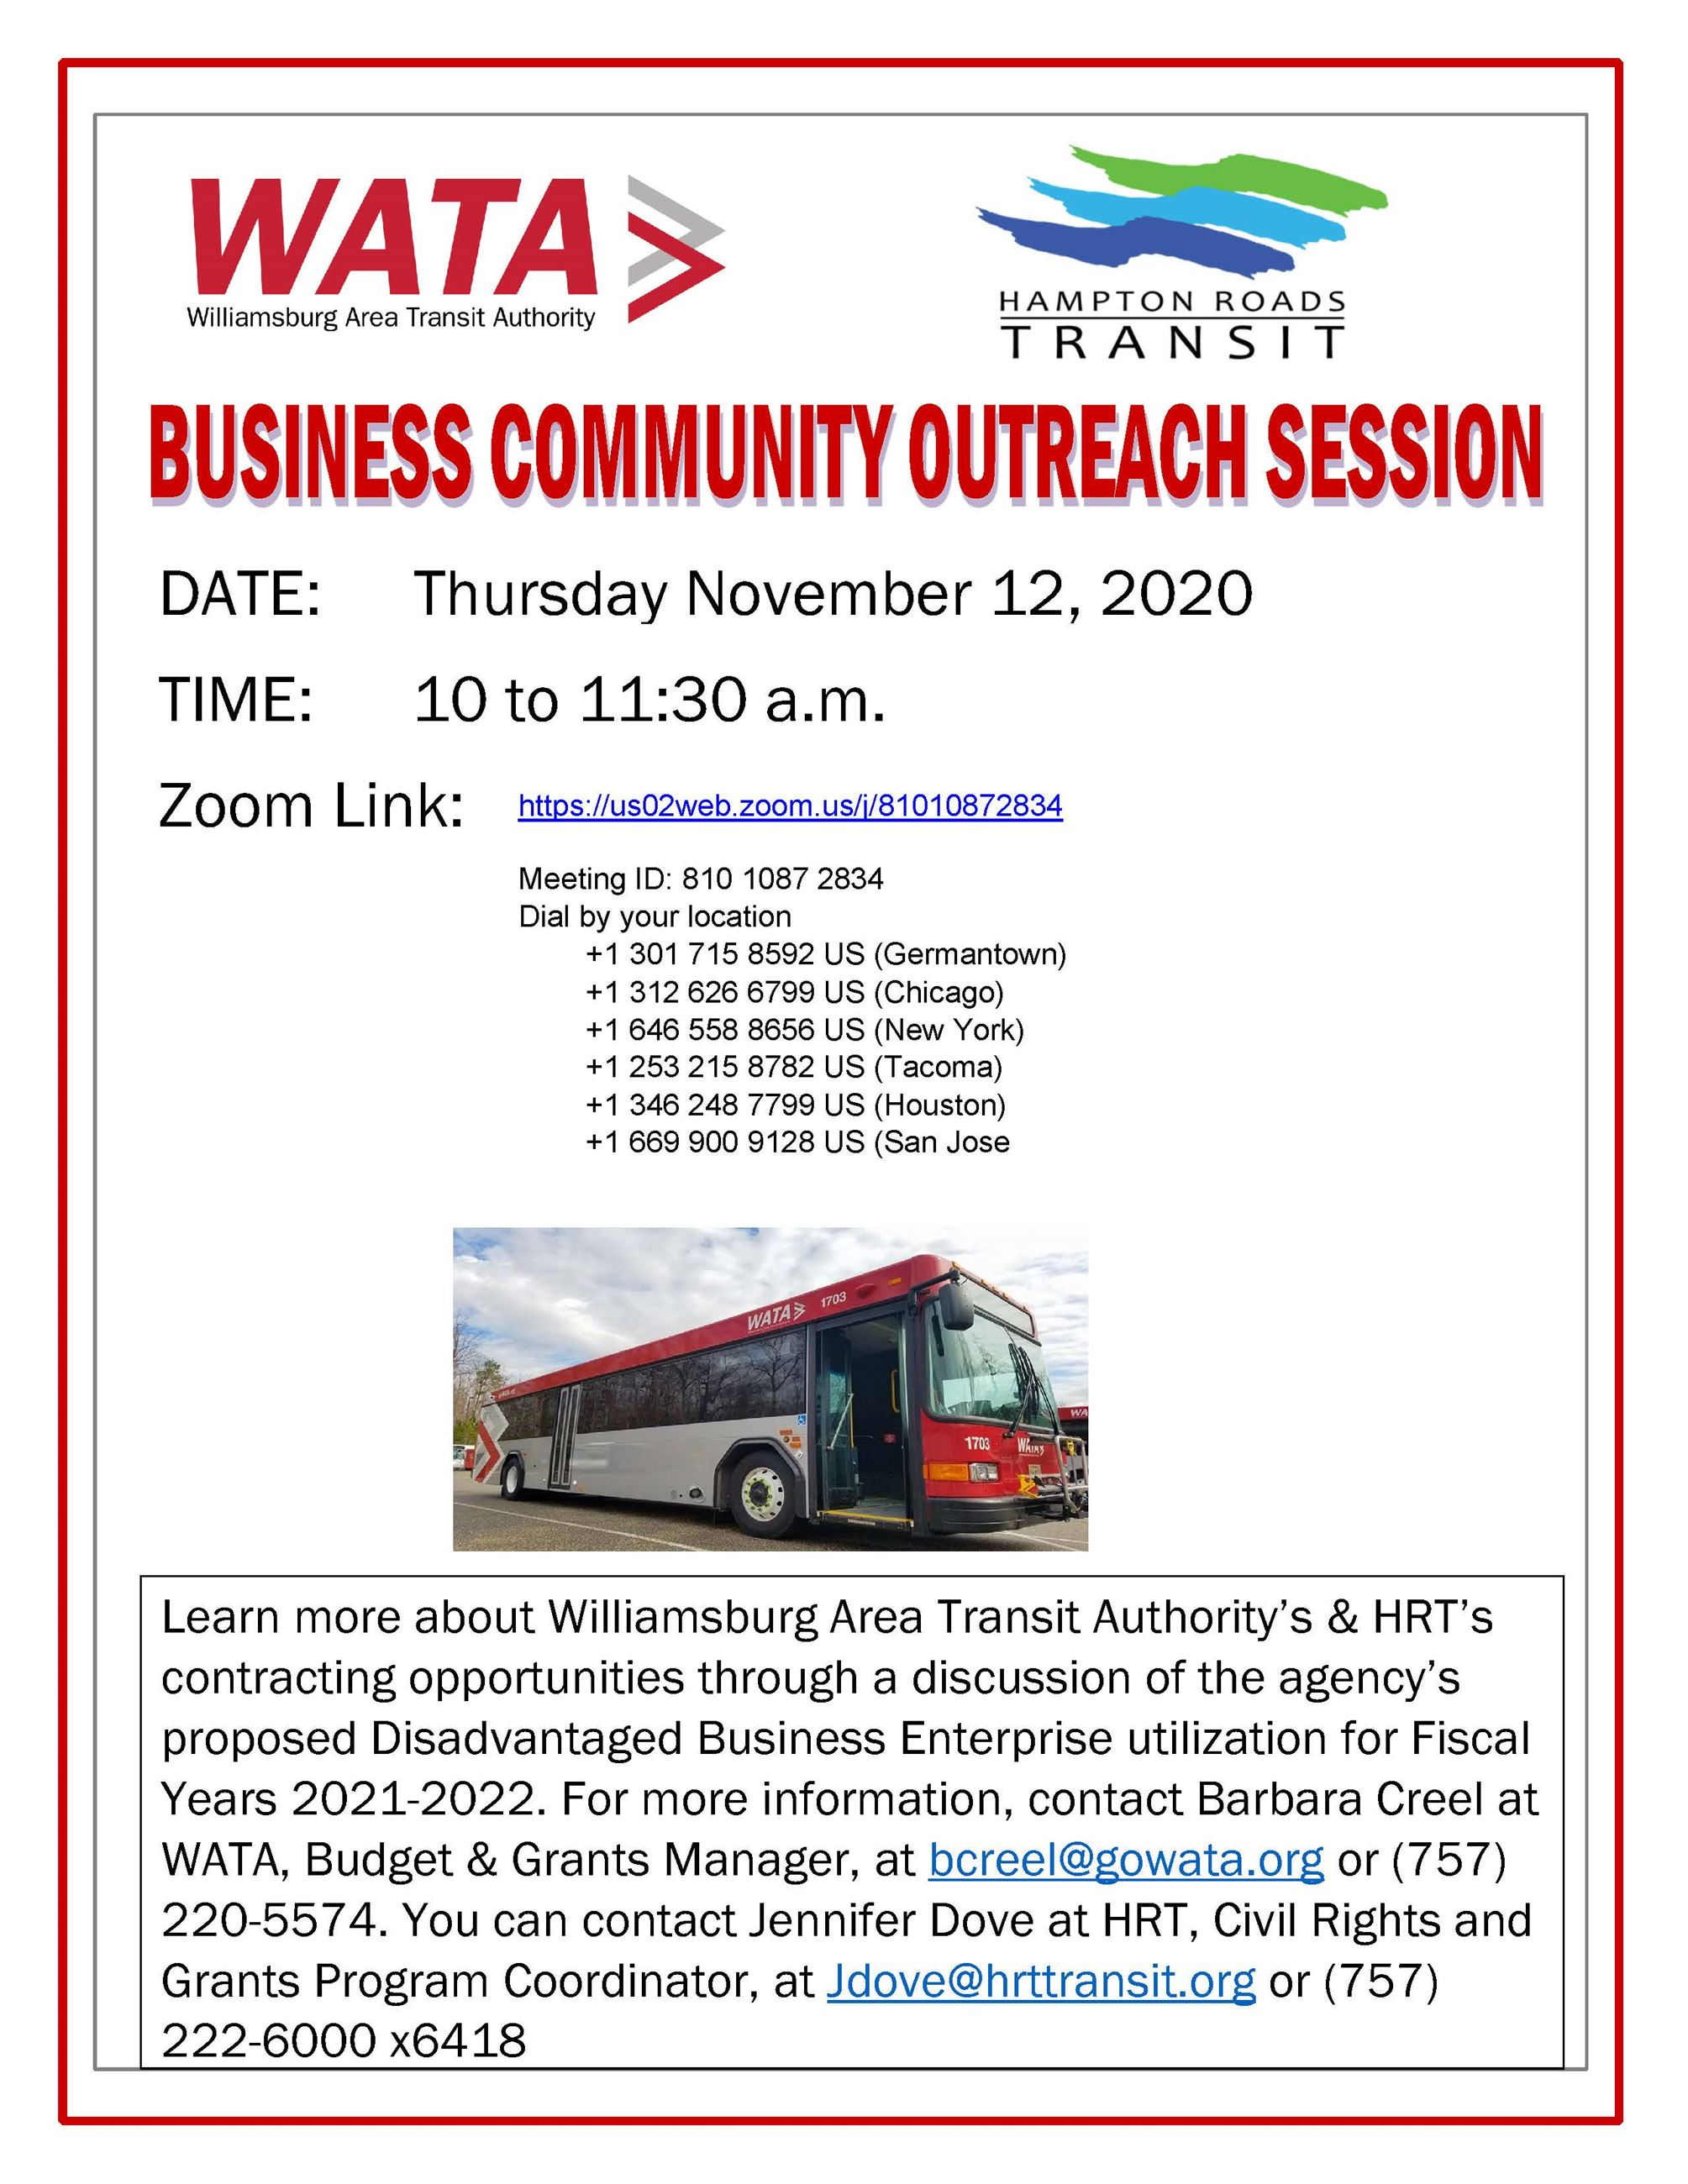 Business Community Outreach Session Flyermc